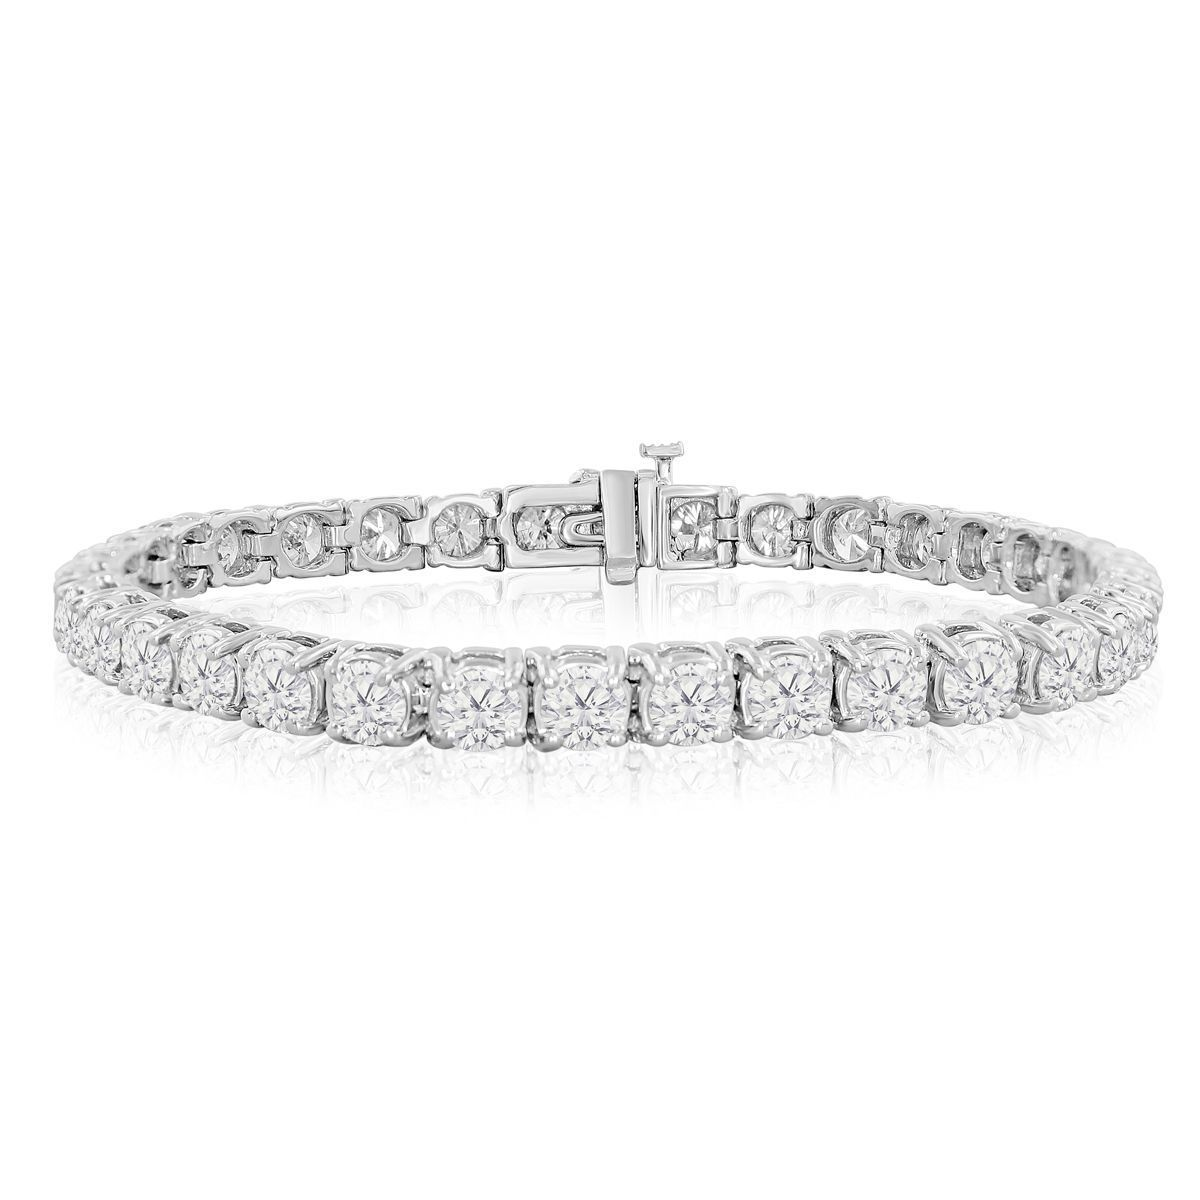 14k White Gold 9 1 2 To 14 1 2ct Tdw Round Diamond Tennis Bracelet J K I2 I3 6 I White Gold Diamond Bracelet Black Diamond Bracelet Tennis Bracelet Diamond